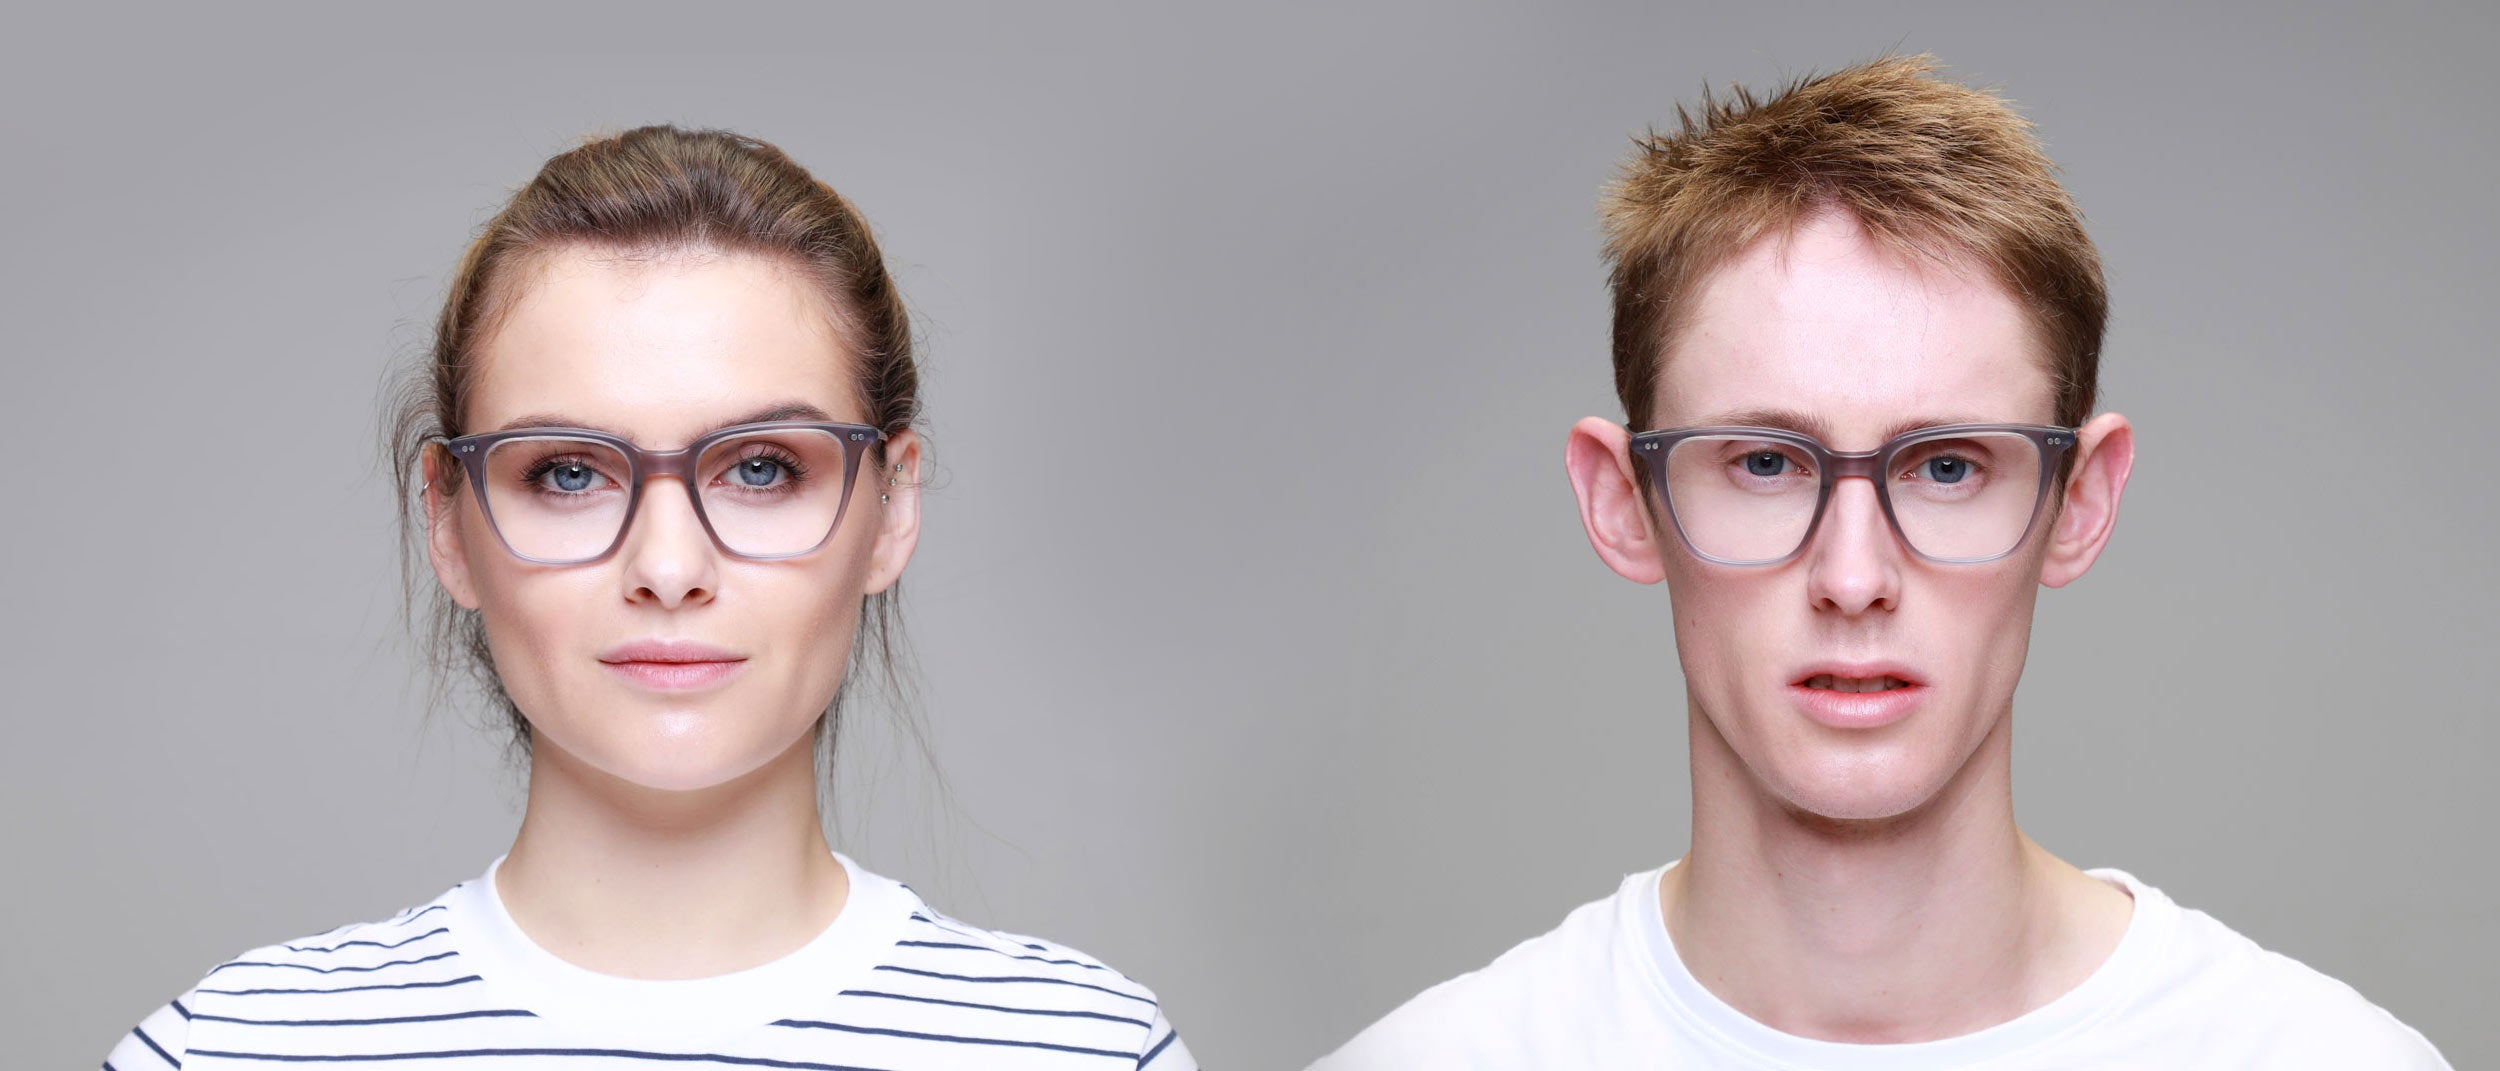 Man-and-Woman-Wearing-Varifocal-Large-grey-frame-glasses